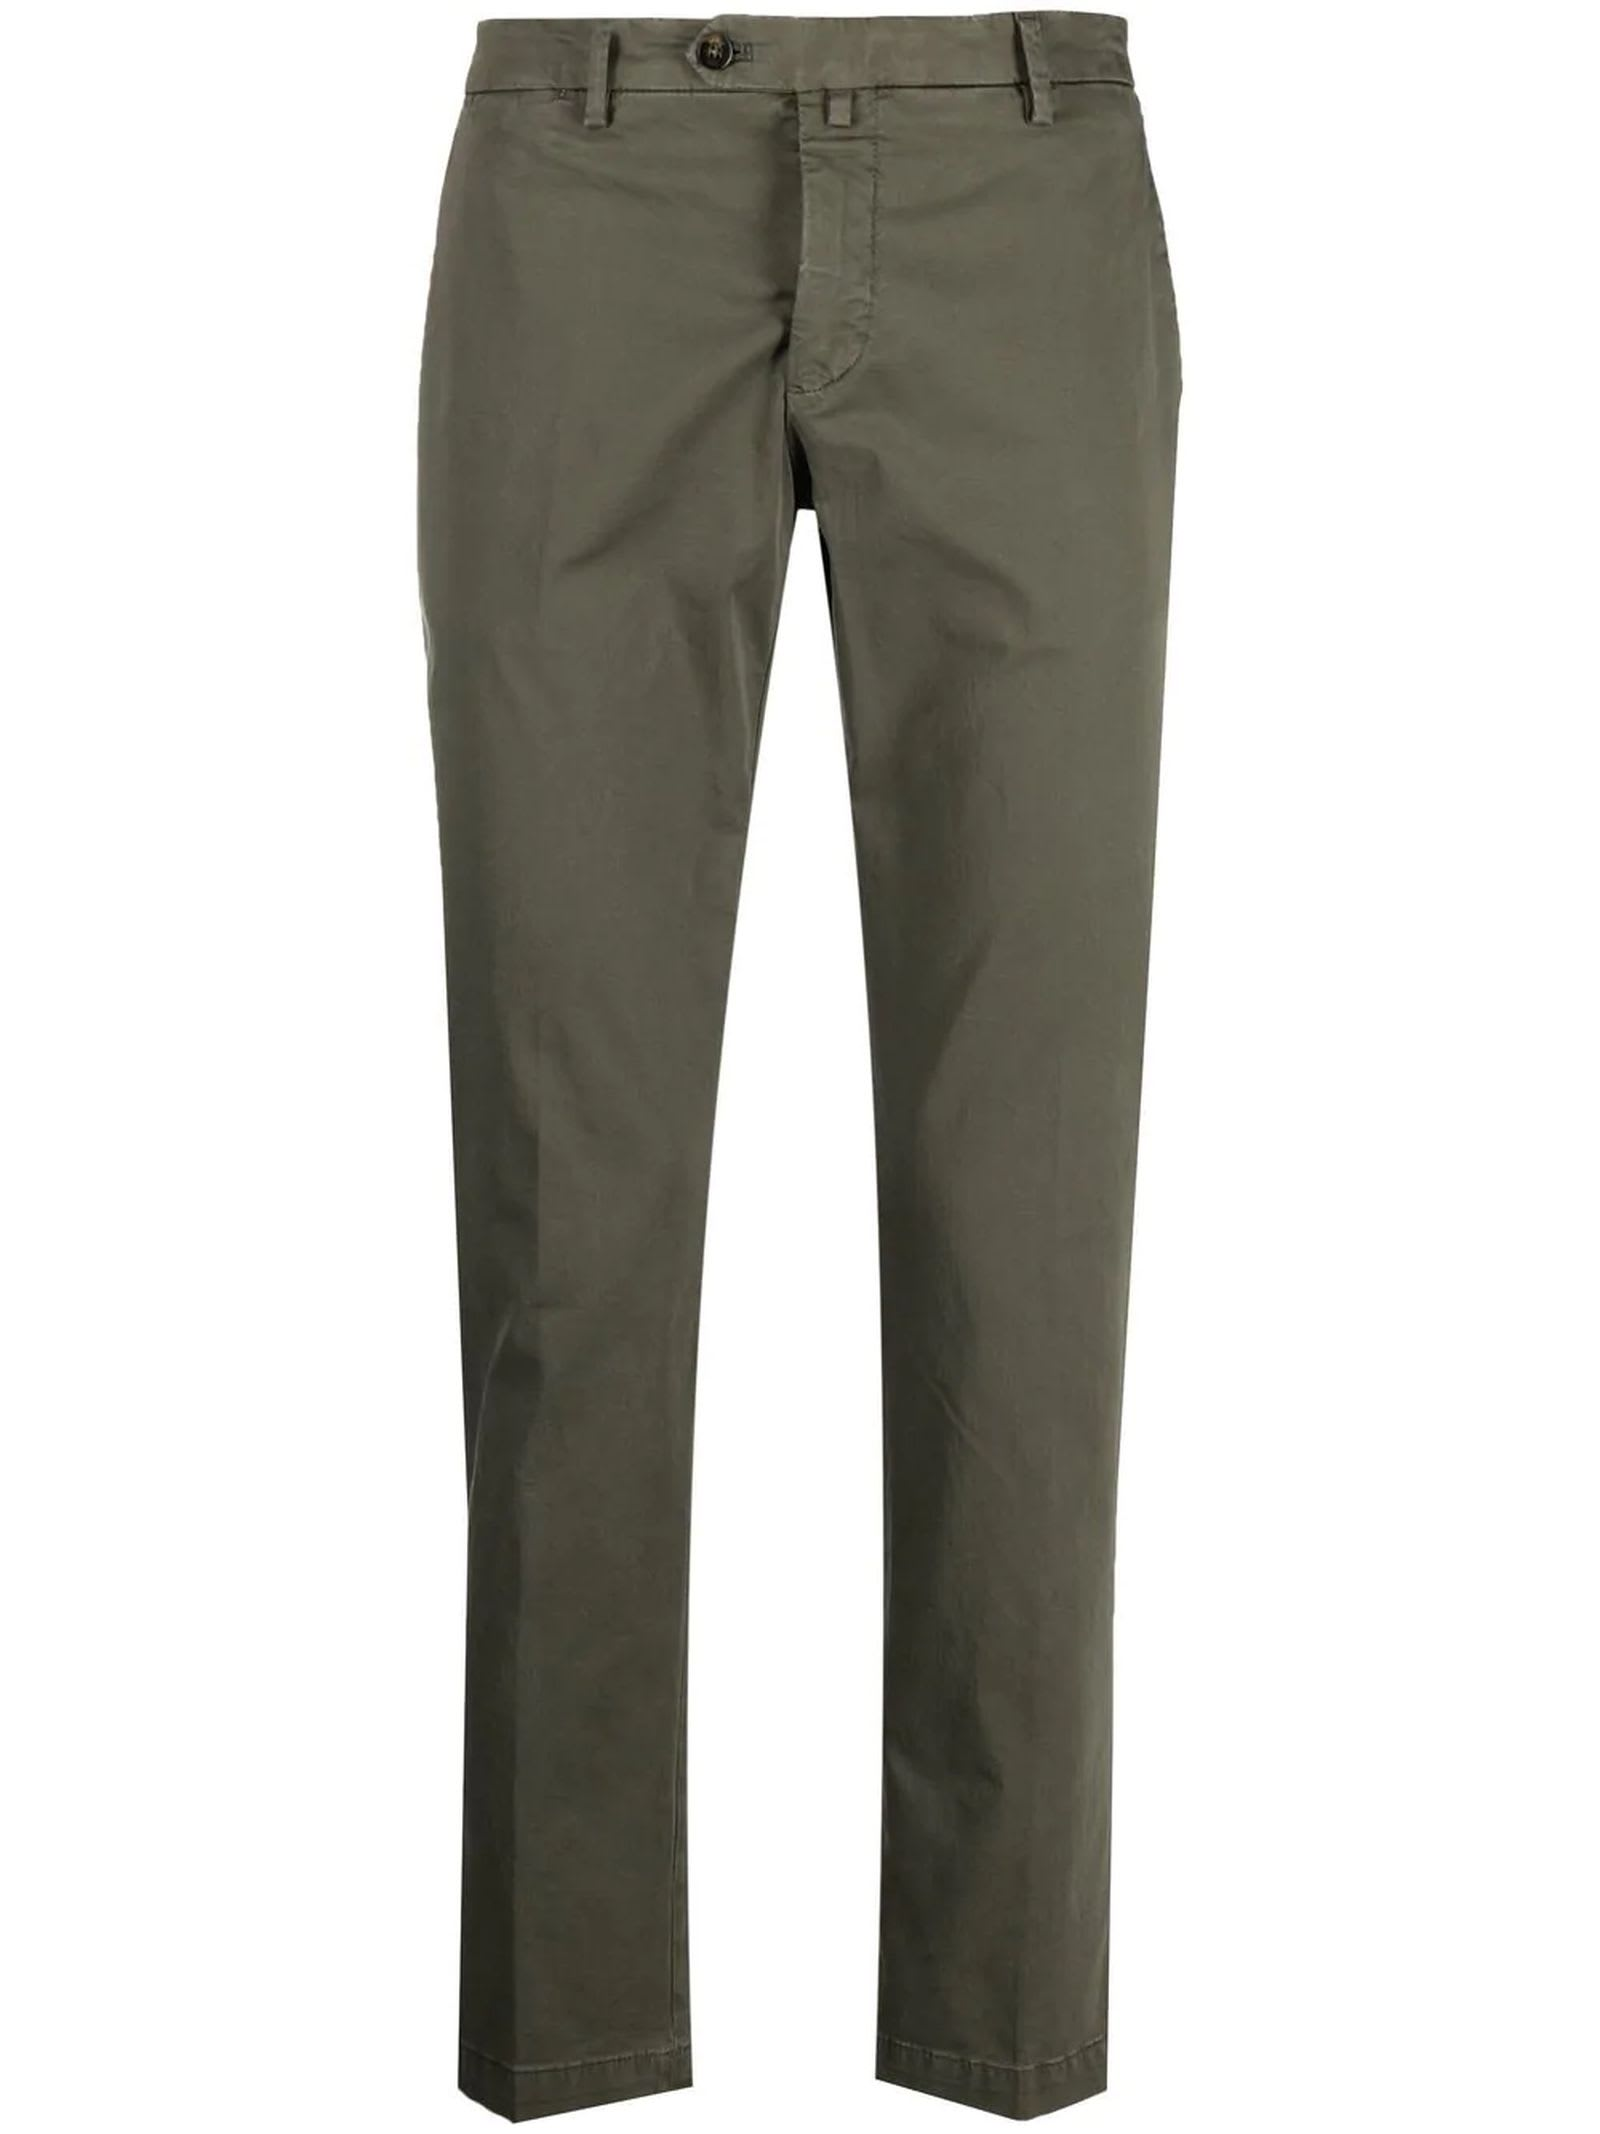 1949 Green Cotton Chino Trousers